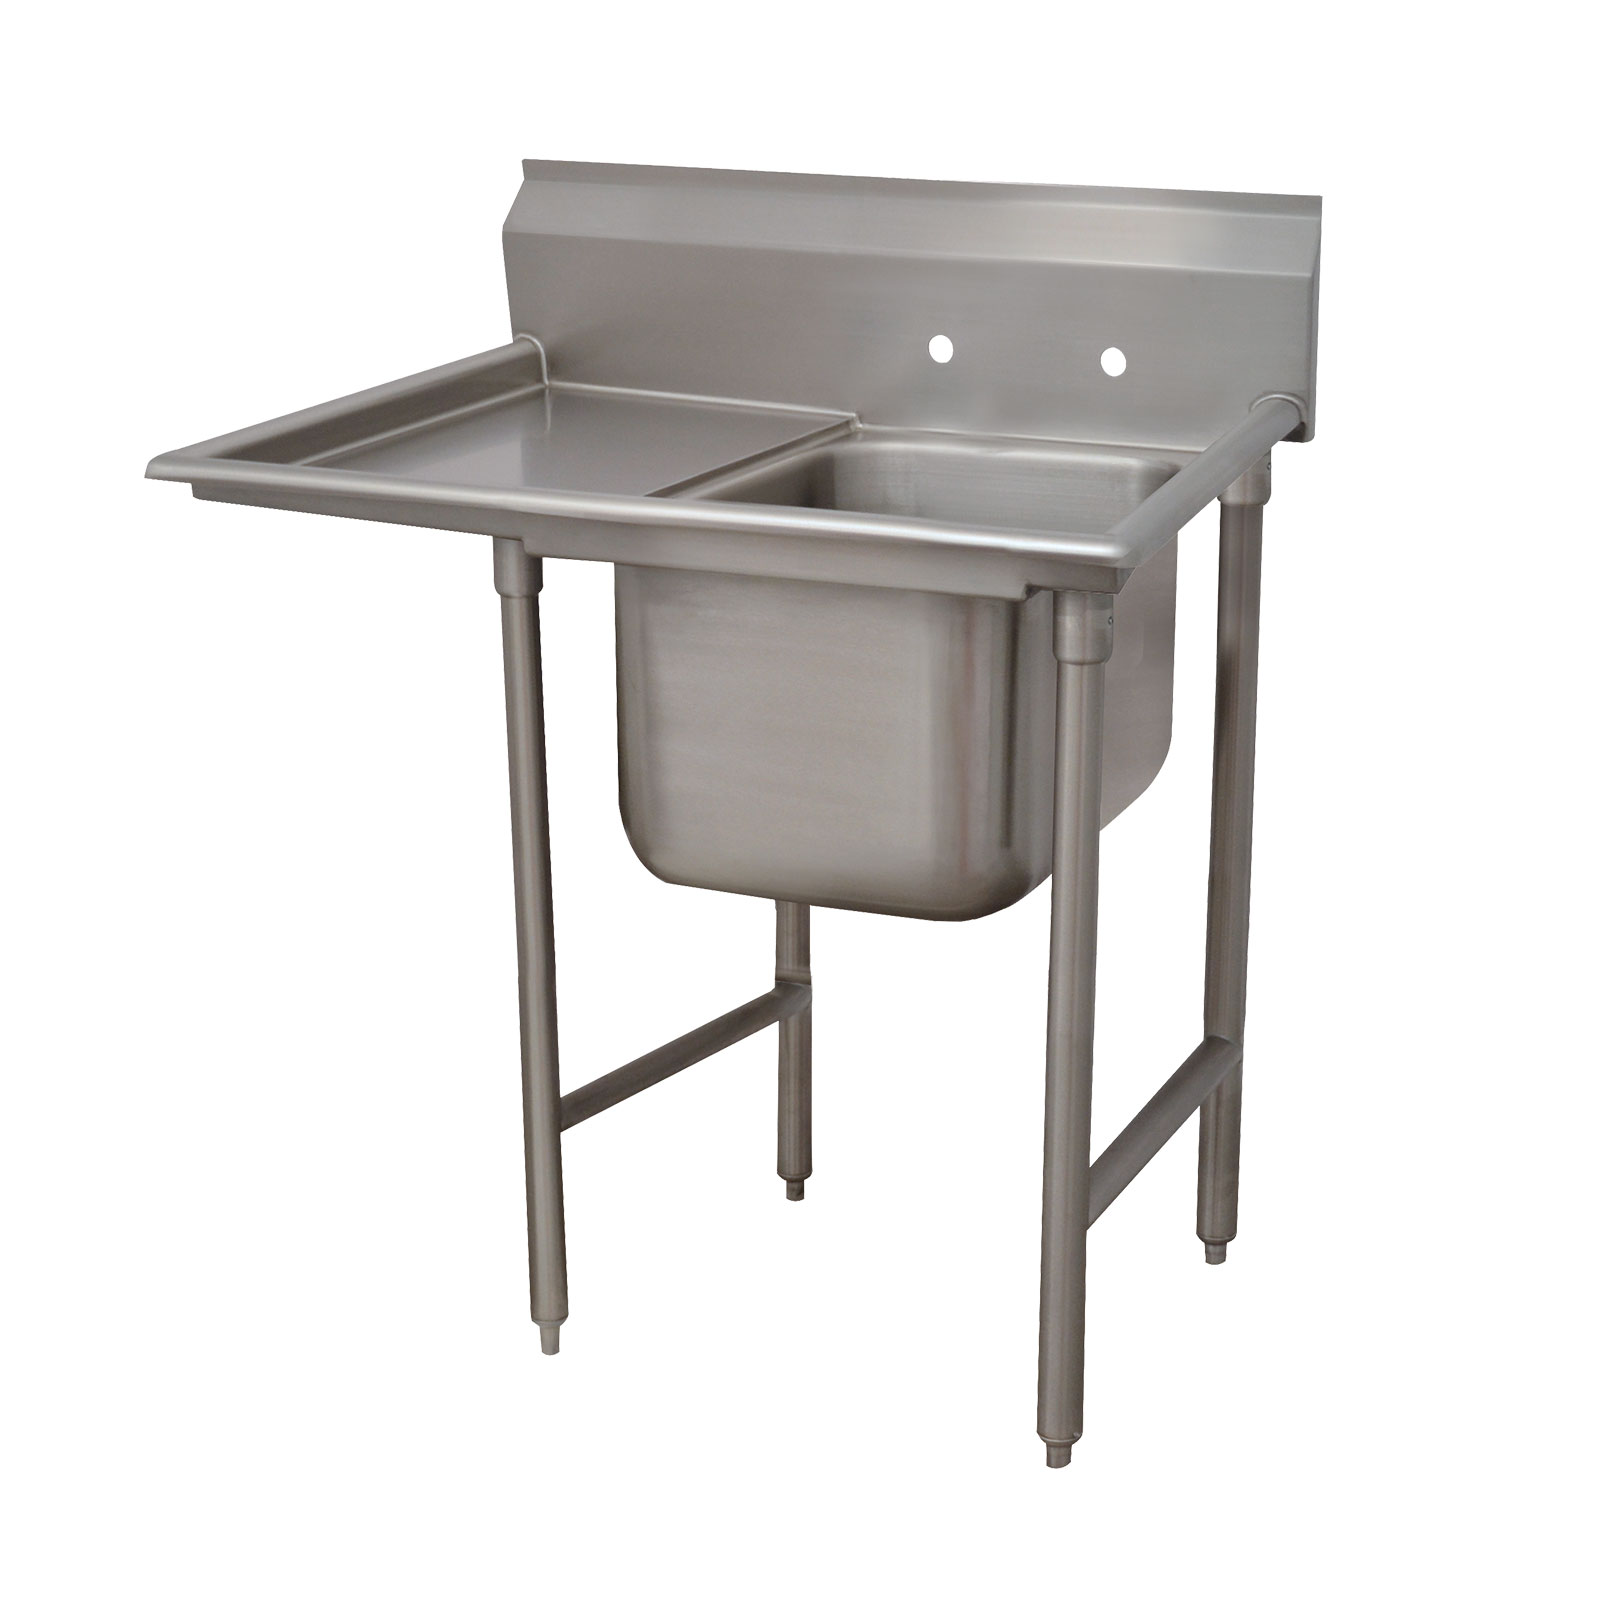 Advance Tabco 9-61-18-36L sink, (1) one compartment